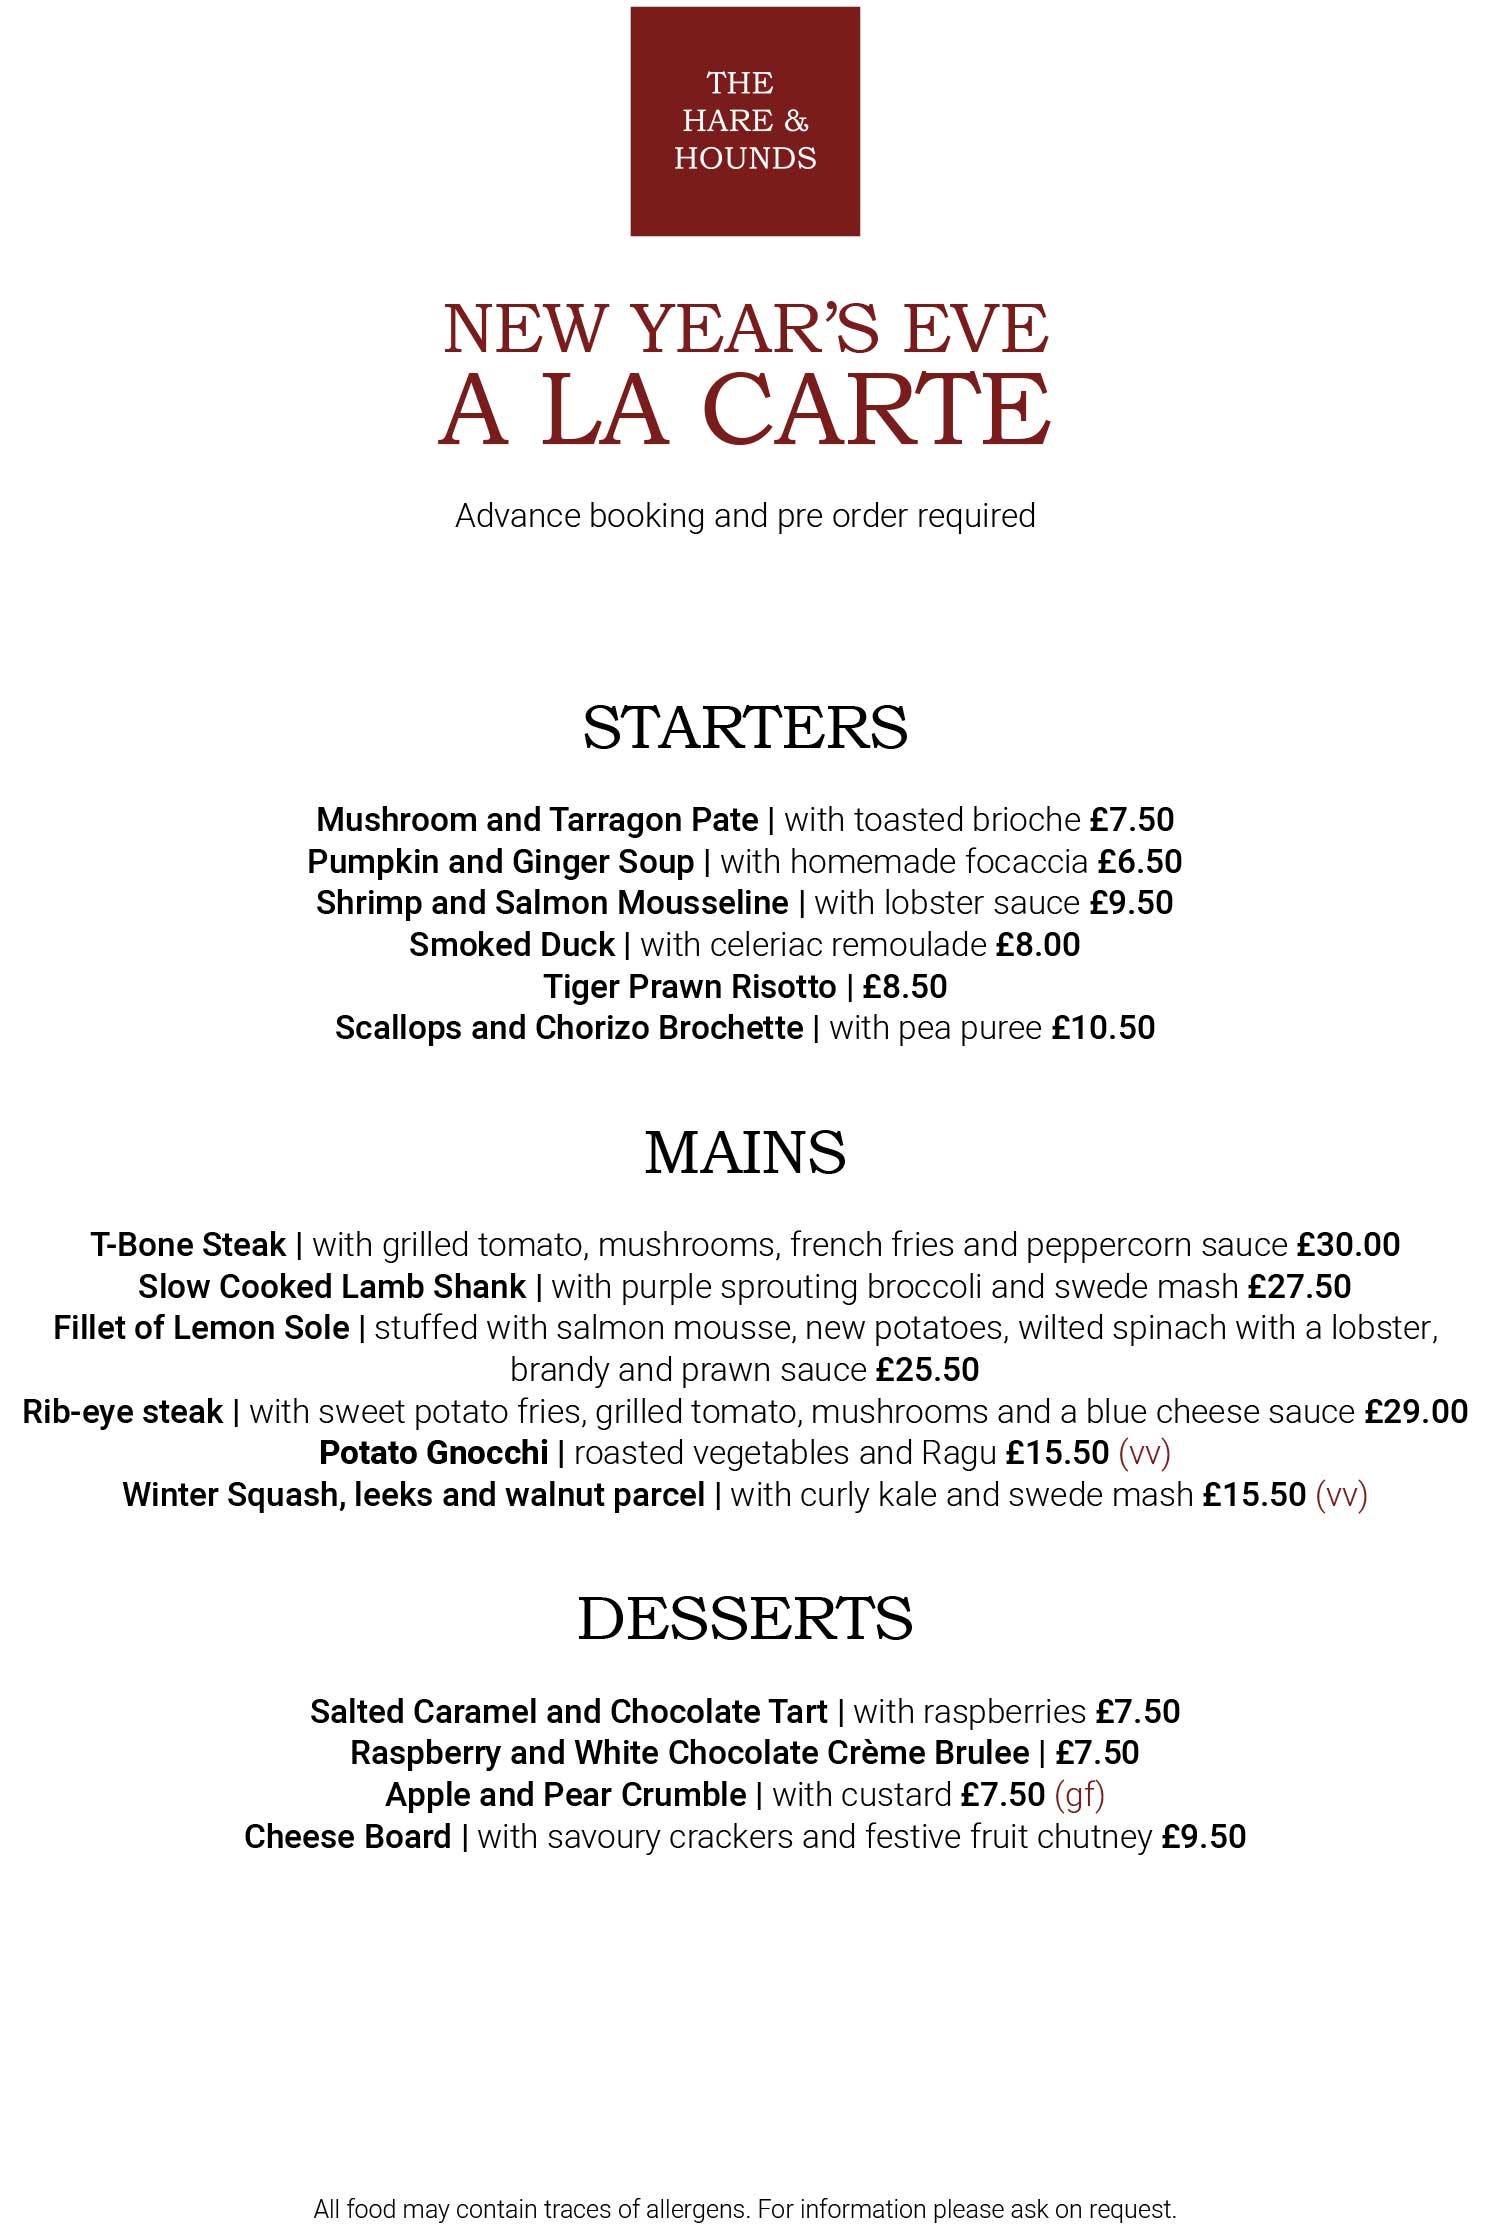 laine_brewery_menu_hare_and_hounds_CW02_online-2.jpg